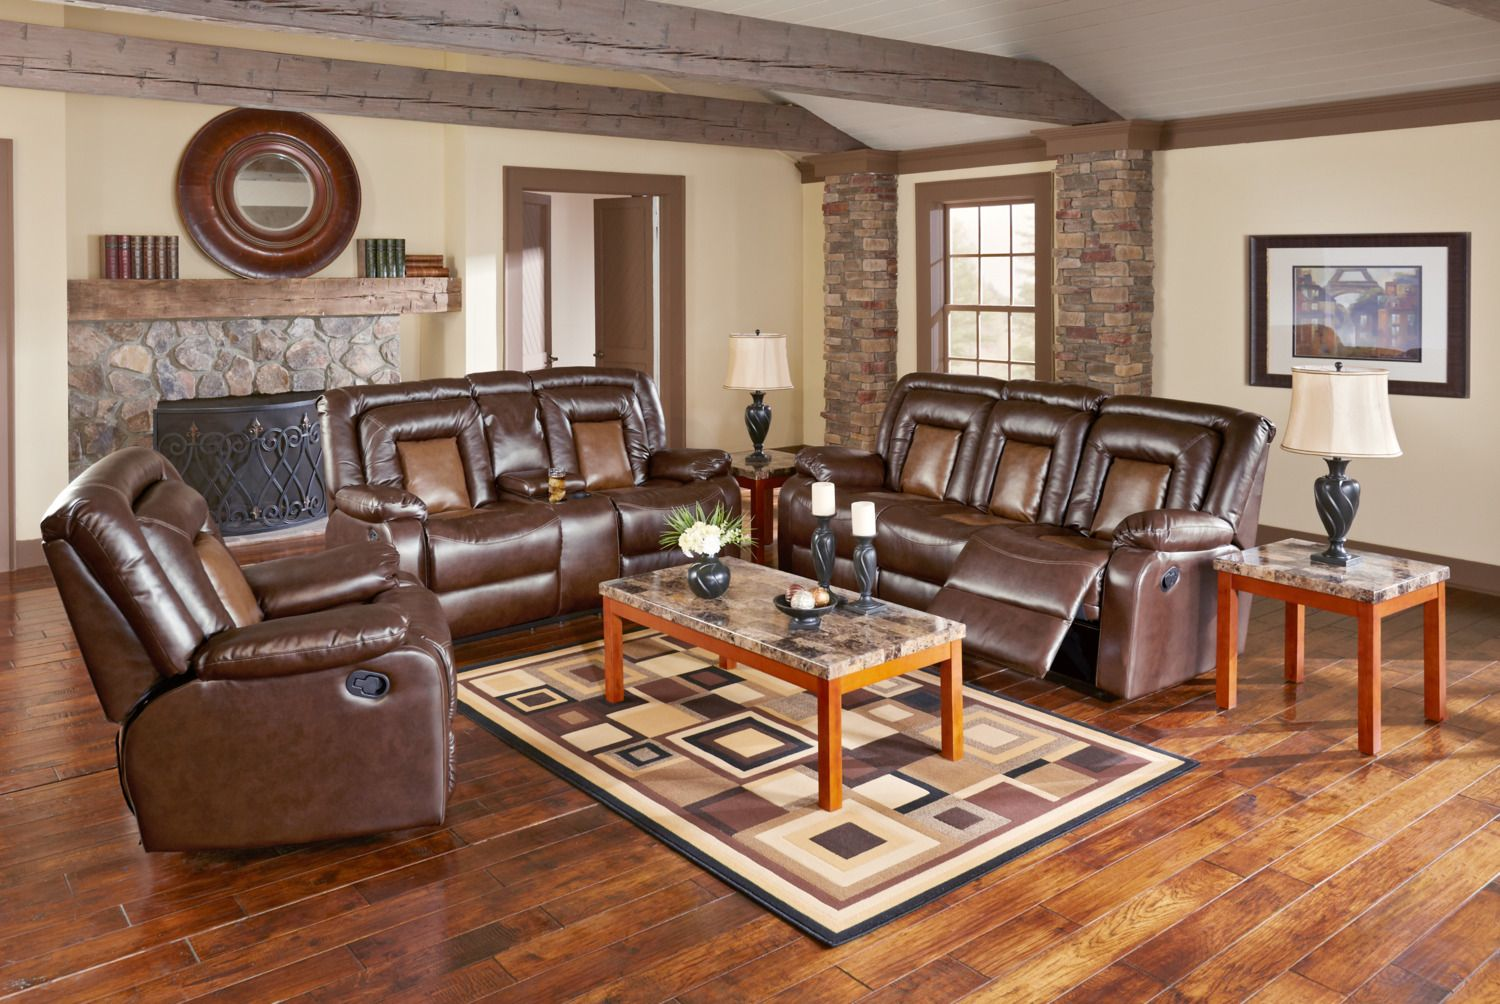 Dual Purpose The Mustang Collection Provides Both Convenience And Comfort In A Distinct Modern Style American Home Furniture Furniture Bedroom Furniture Sets